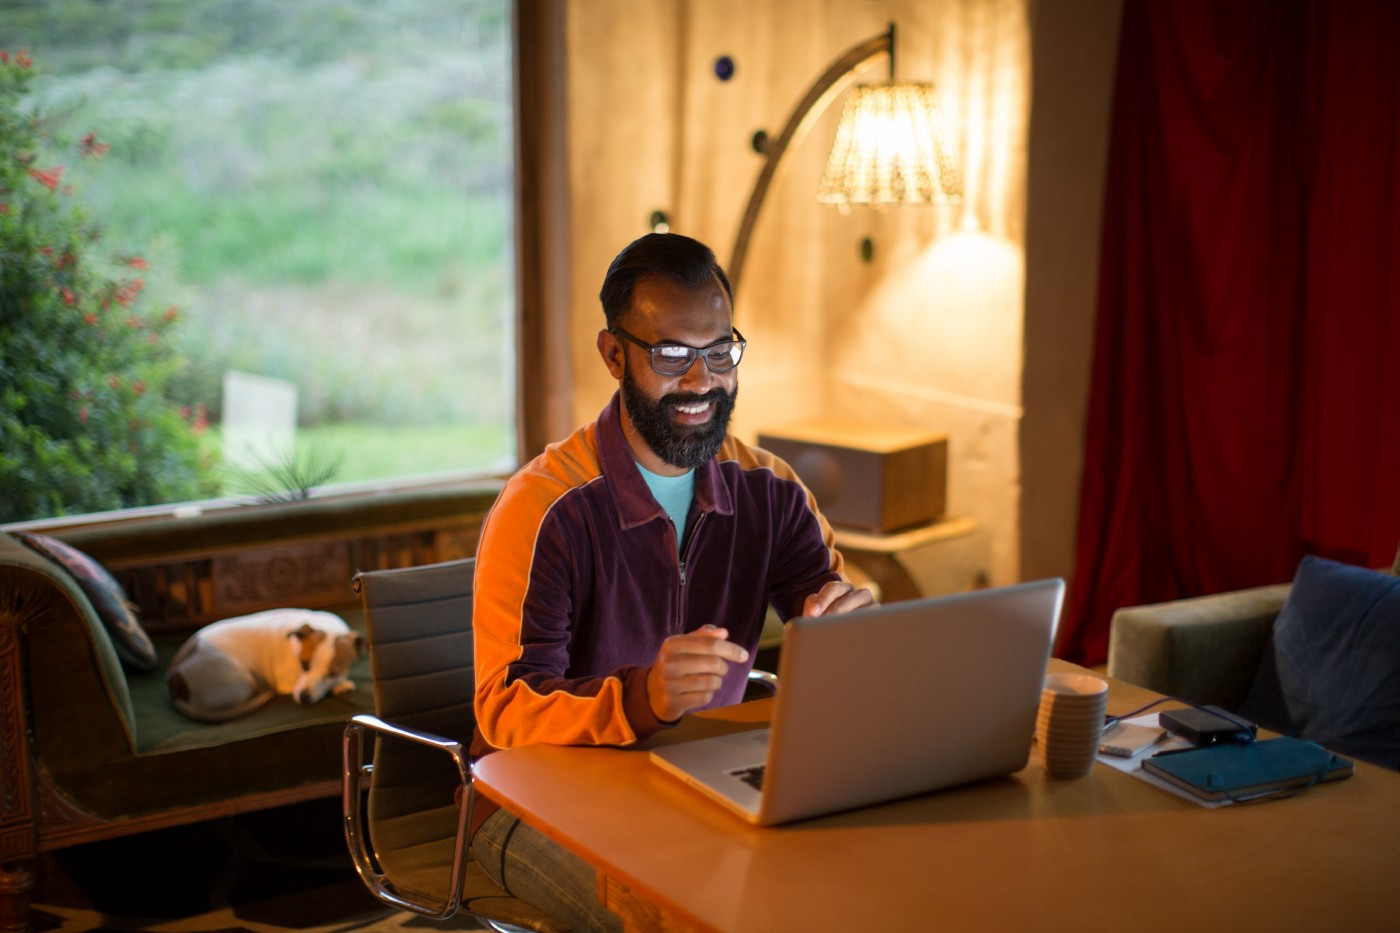 Mixed race man working from home on his computer, smiling